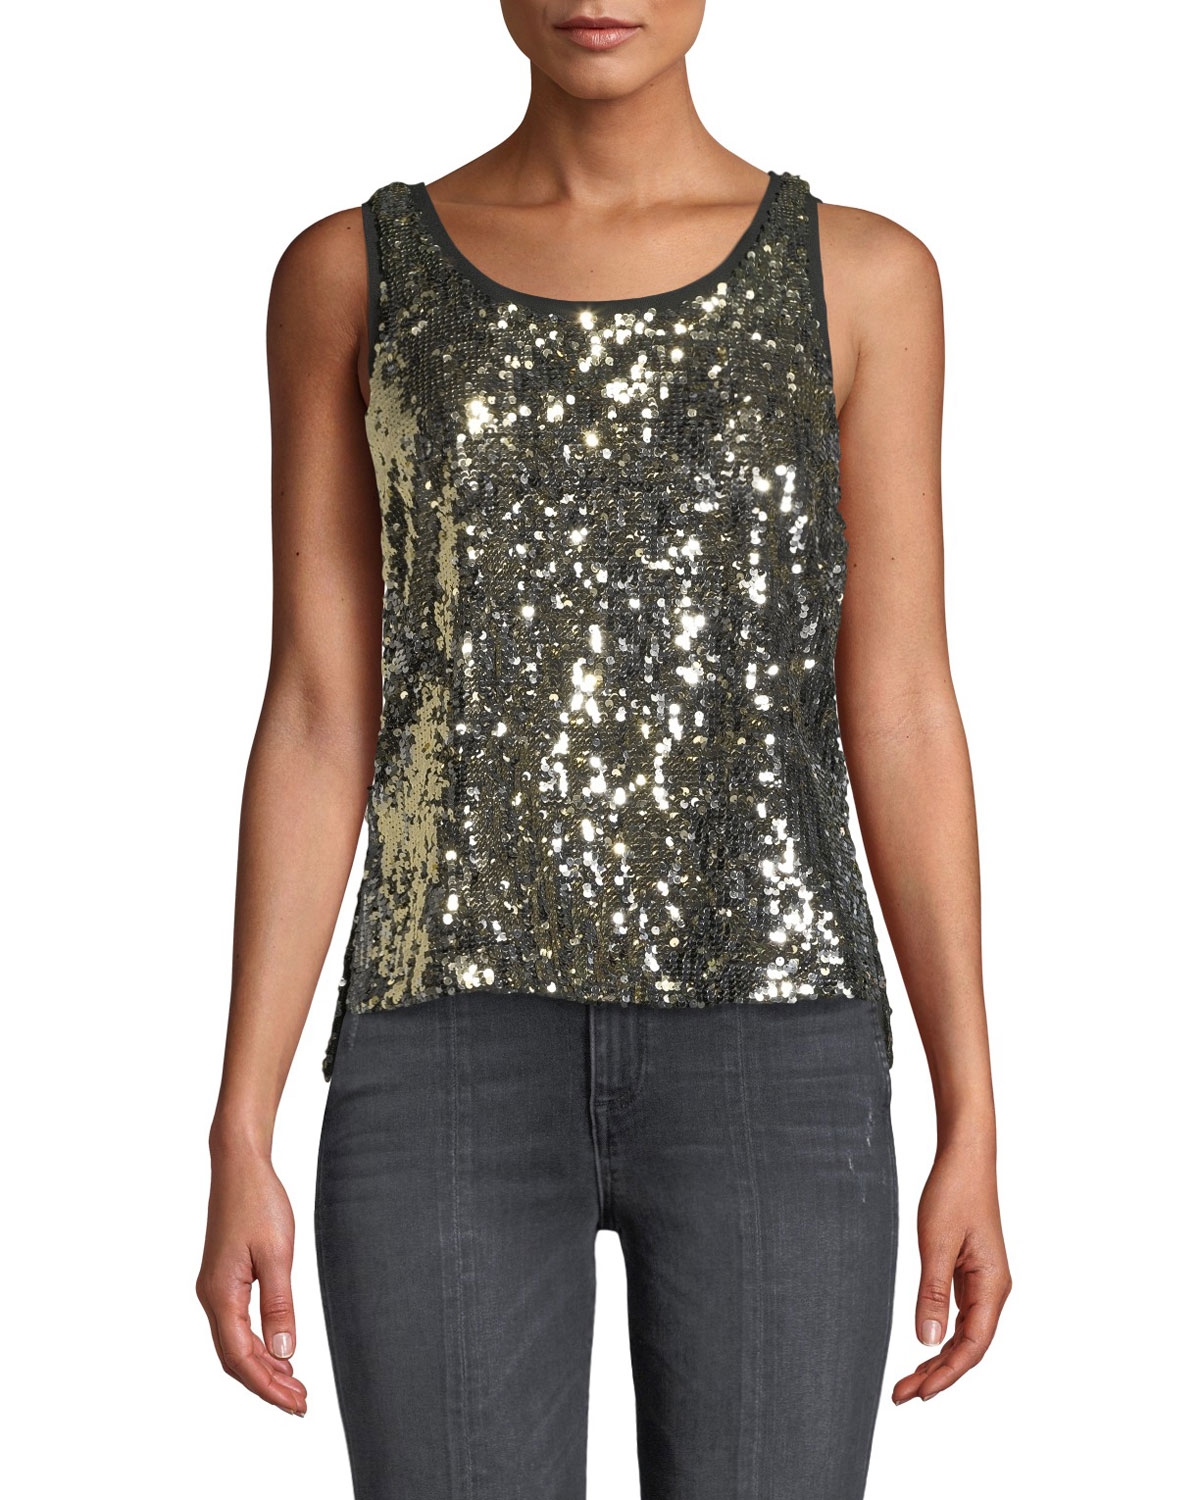 Emmett Sequin Tank Top